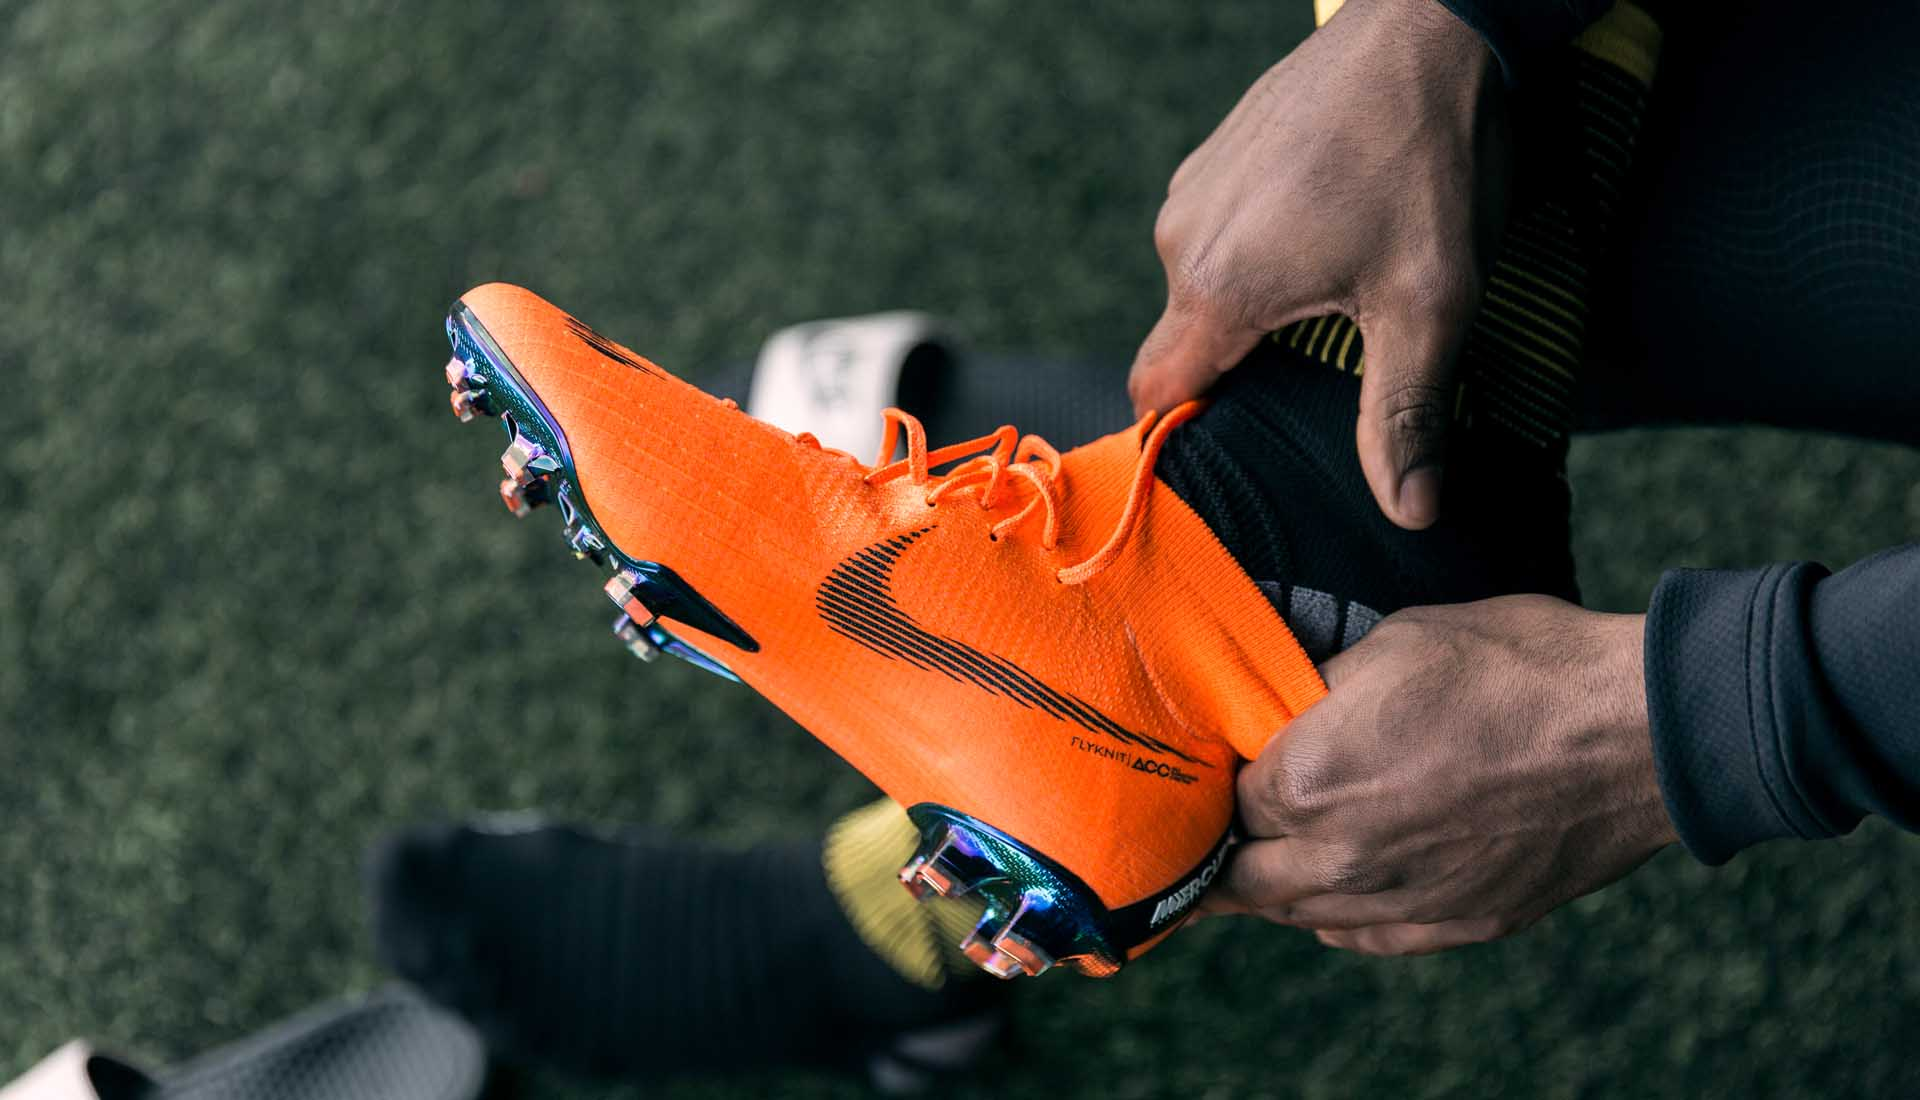 accf56f2d Laced Up: Nike Mercurial Superfly 360 Review - SoccerBible